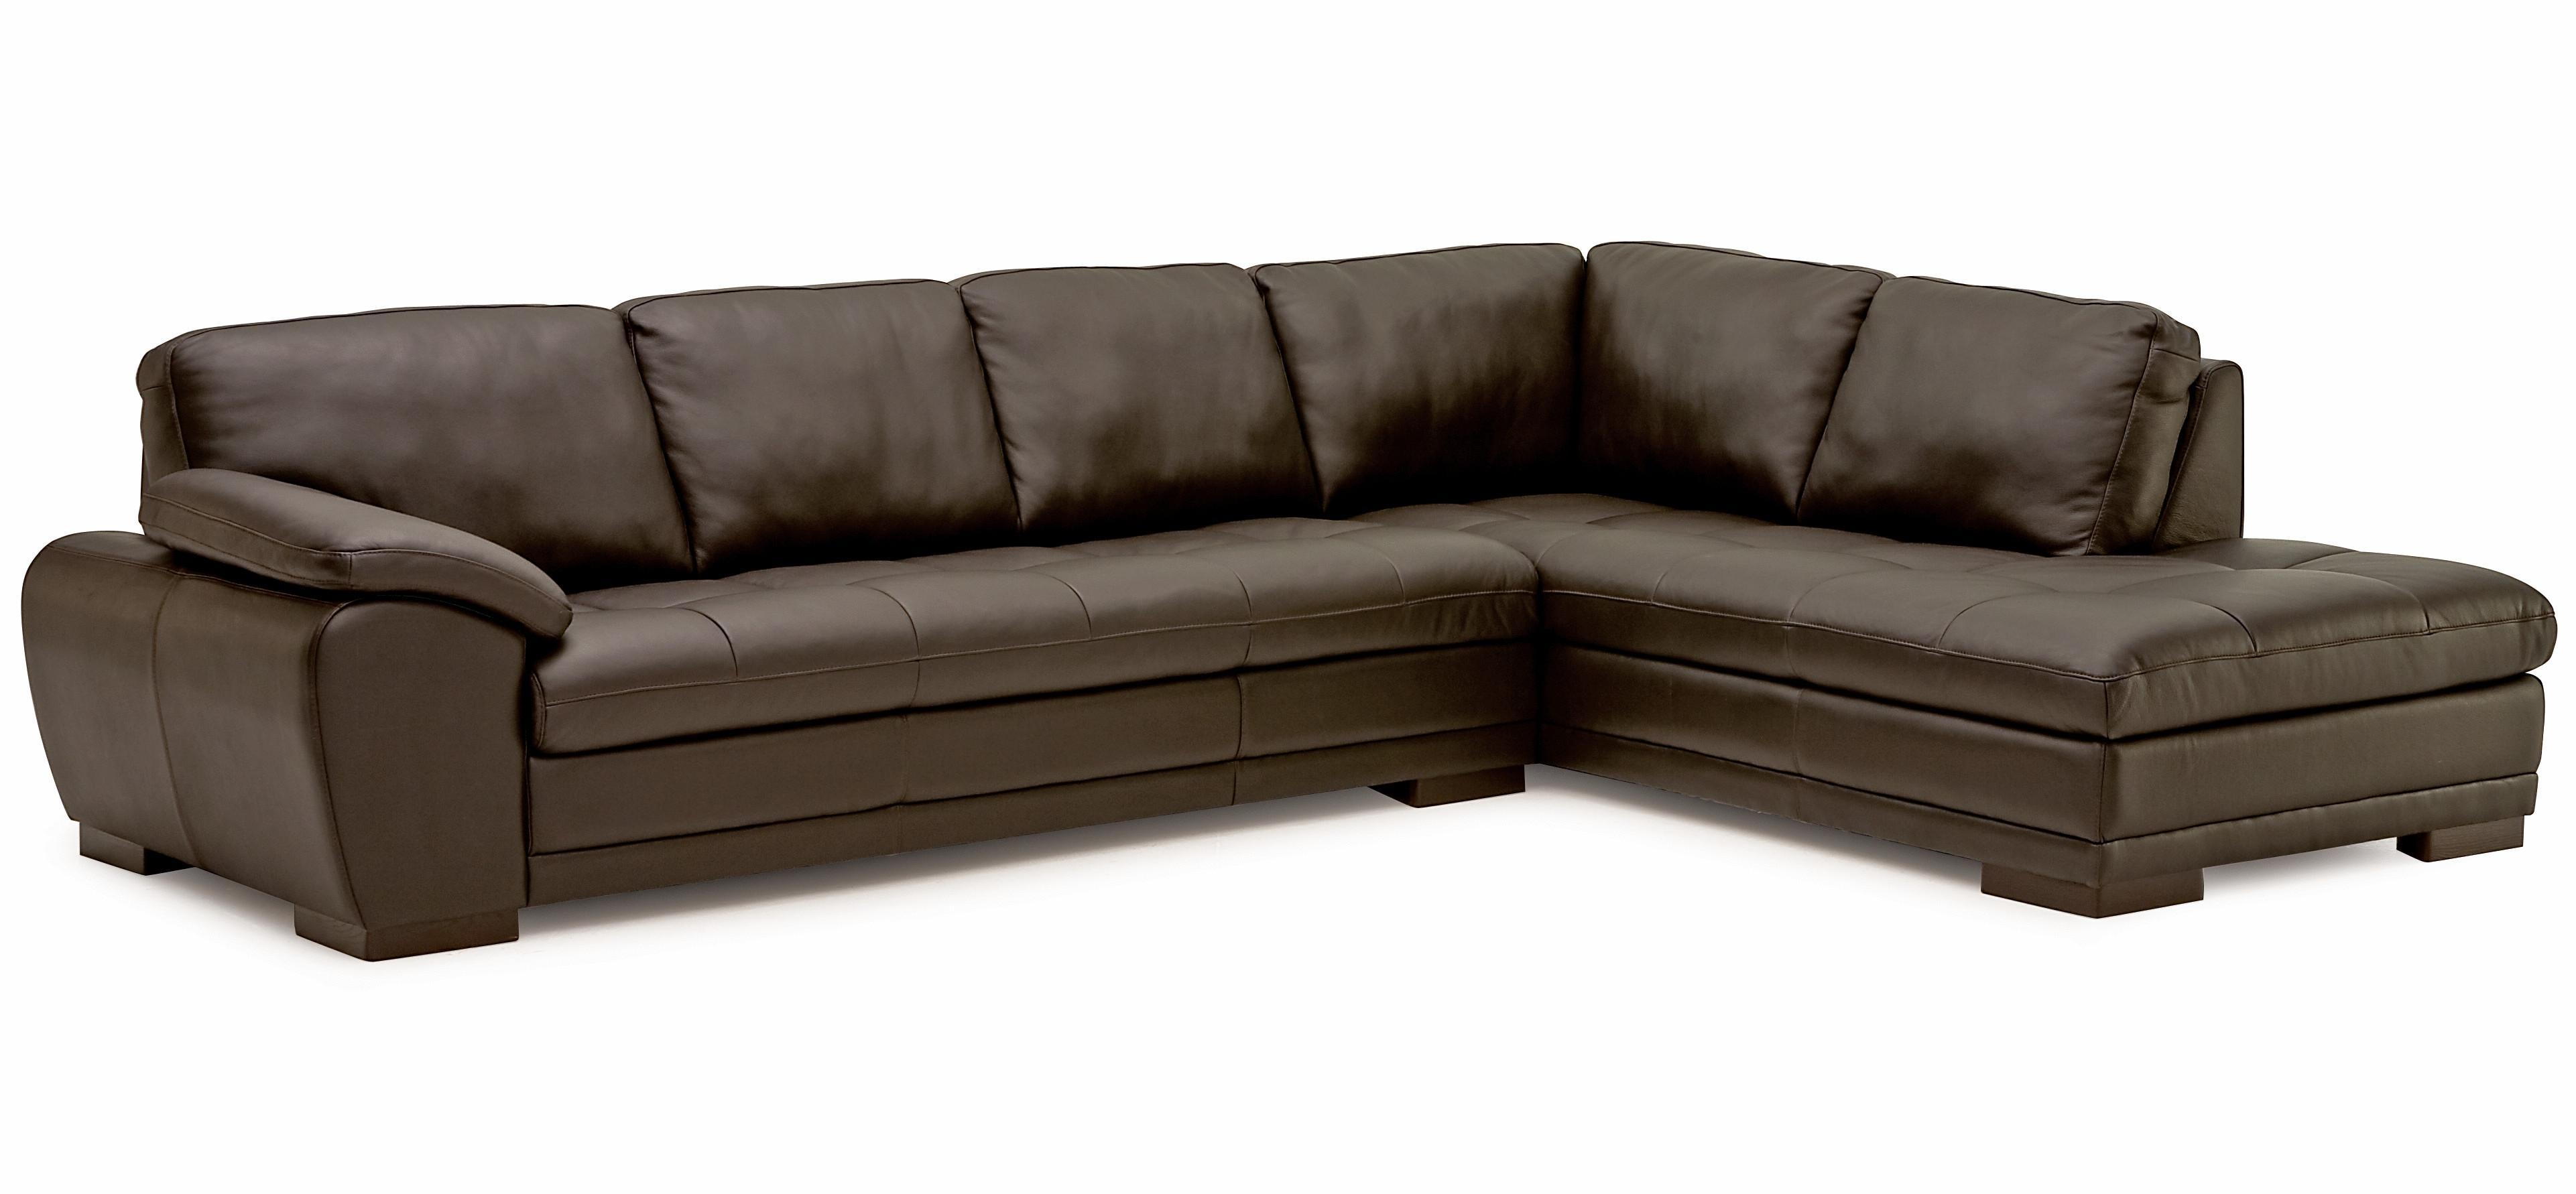 chaise sectional facing with arms products heston by sloped and item sofa right side flared contemporary klaussner